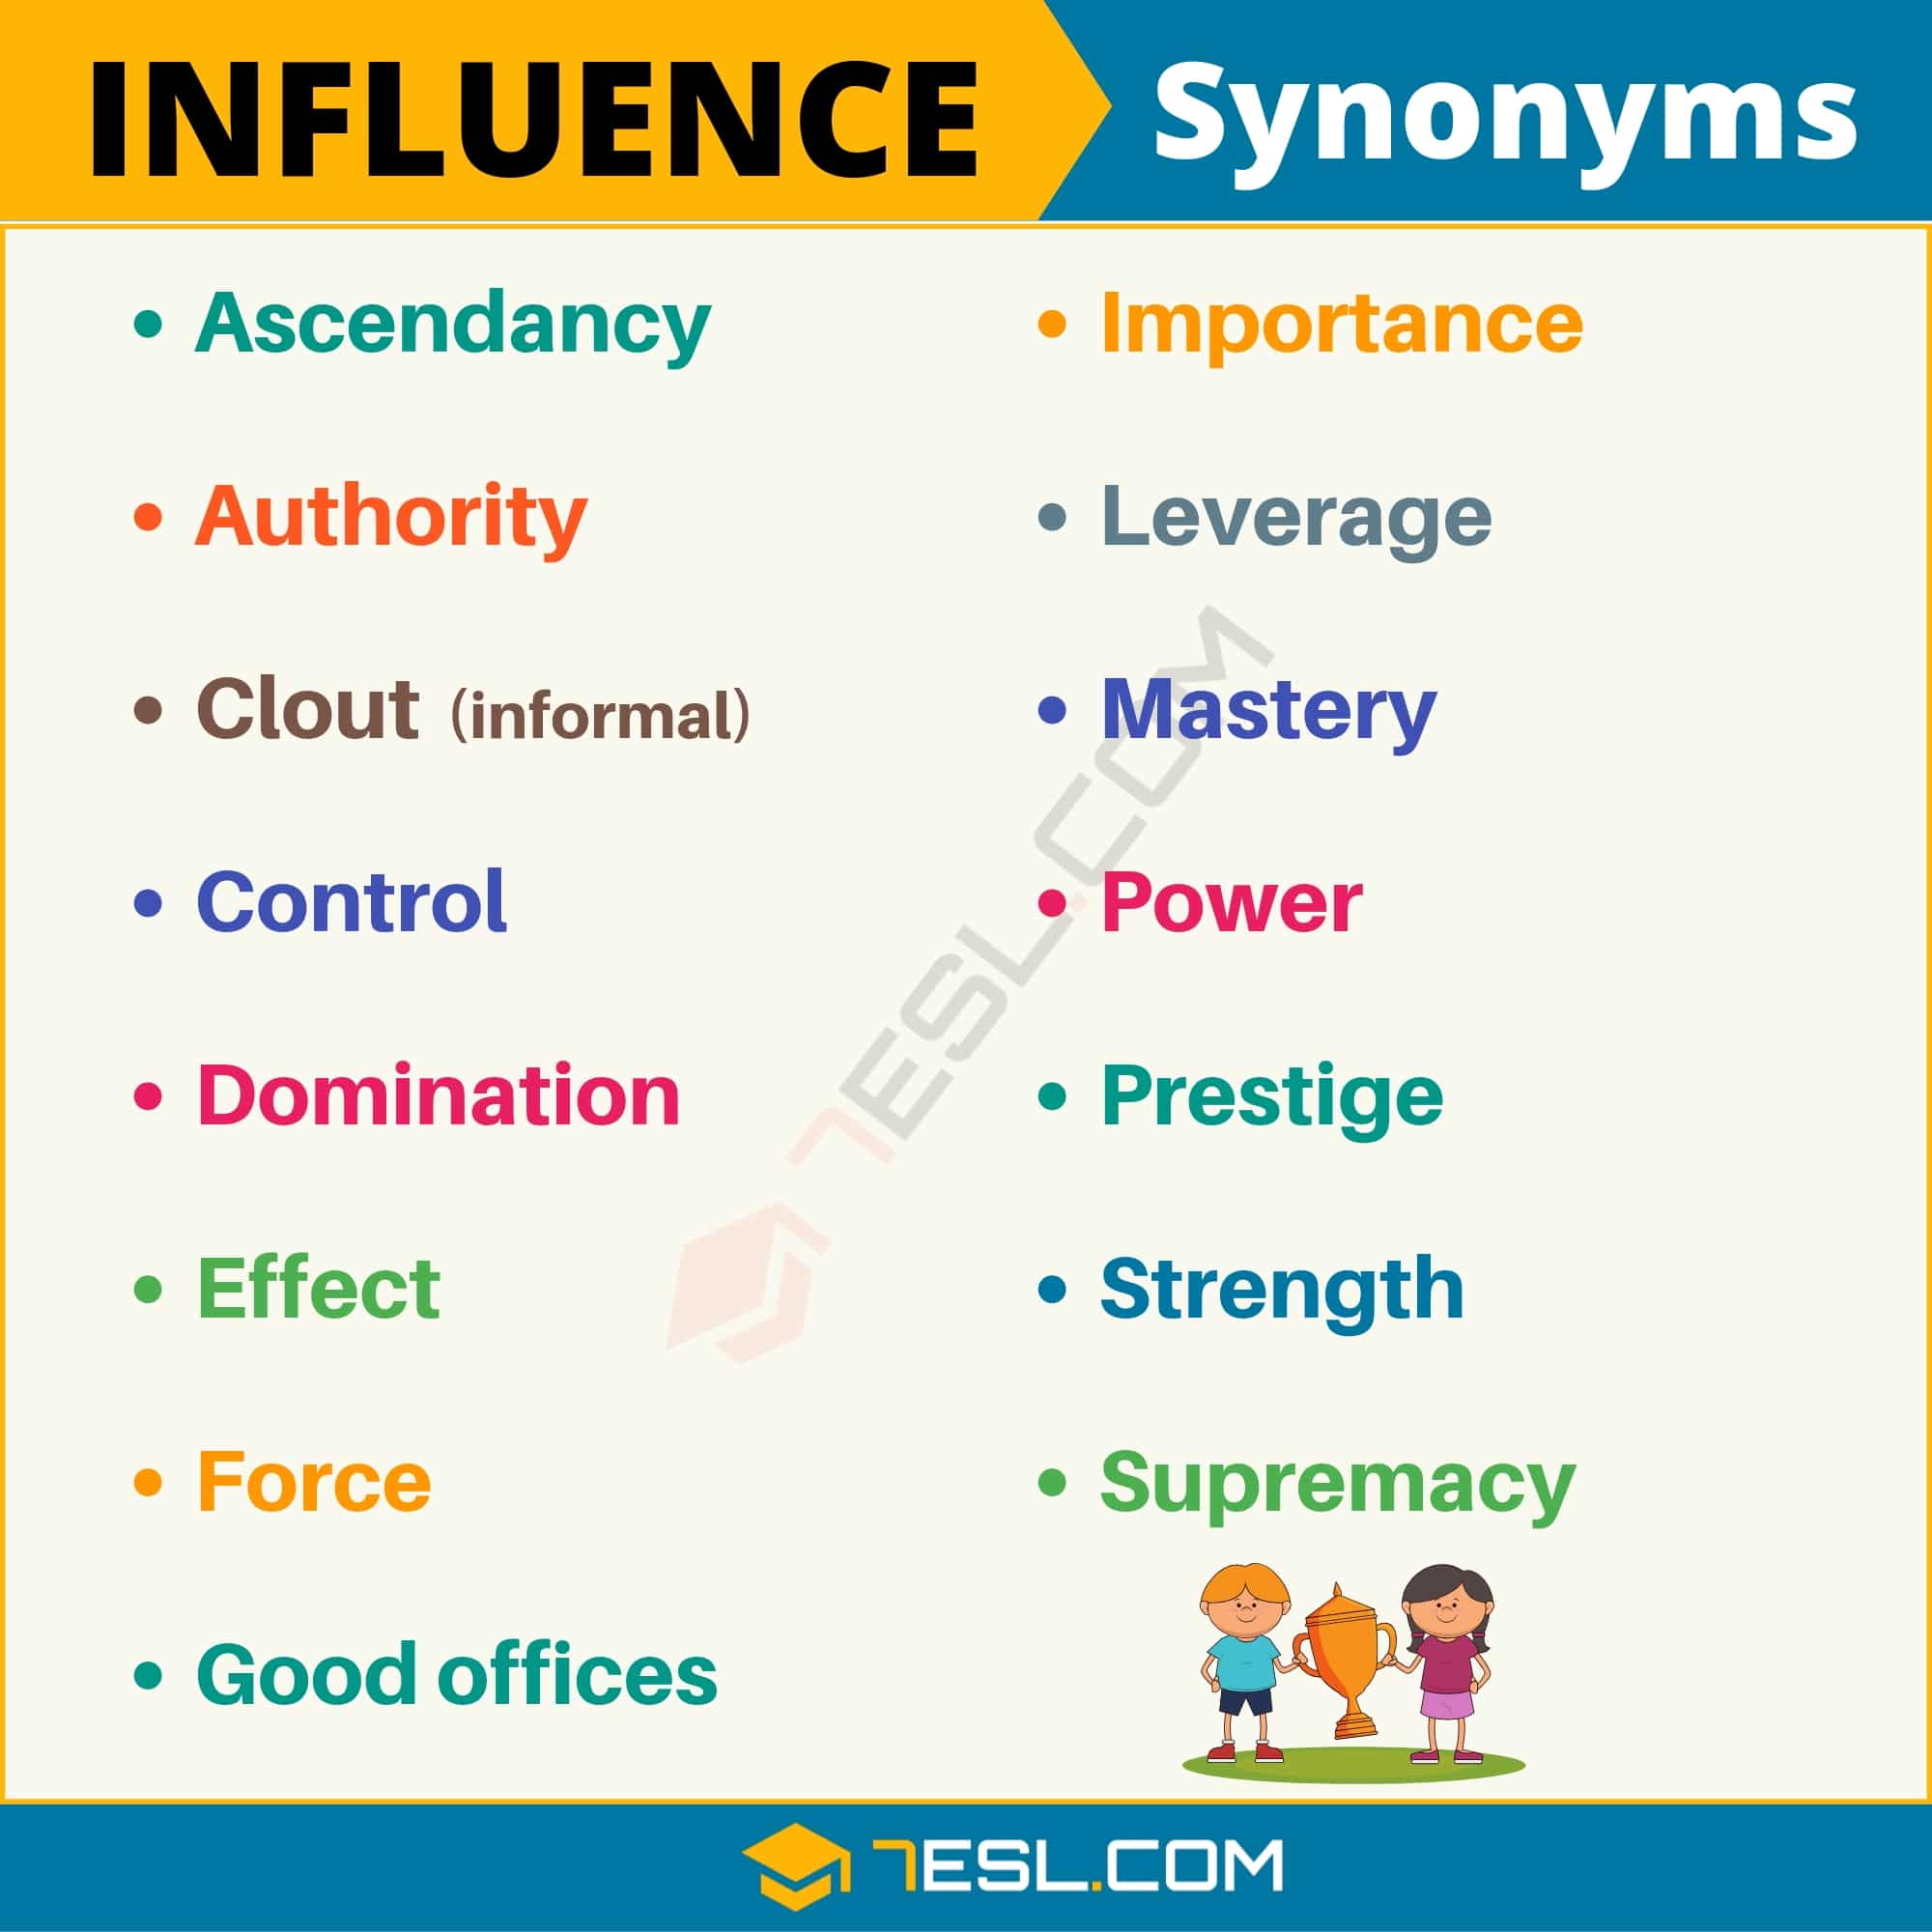 INFLUENCE Synonym: 15 Synonyms for Influence with Useful Examples